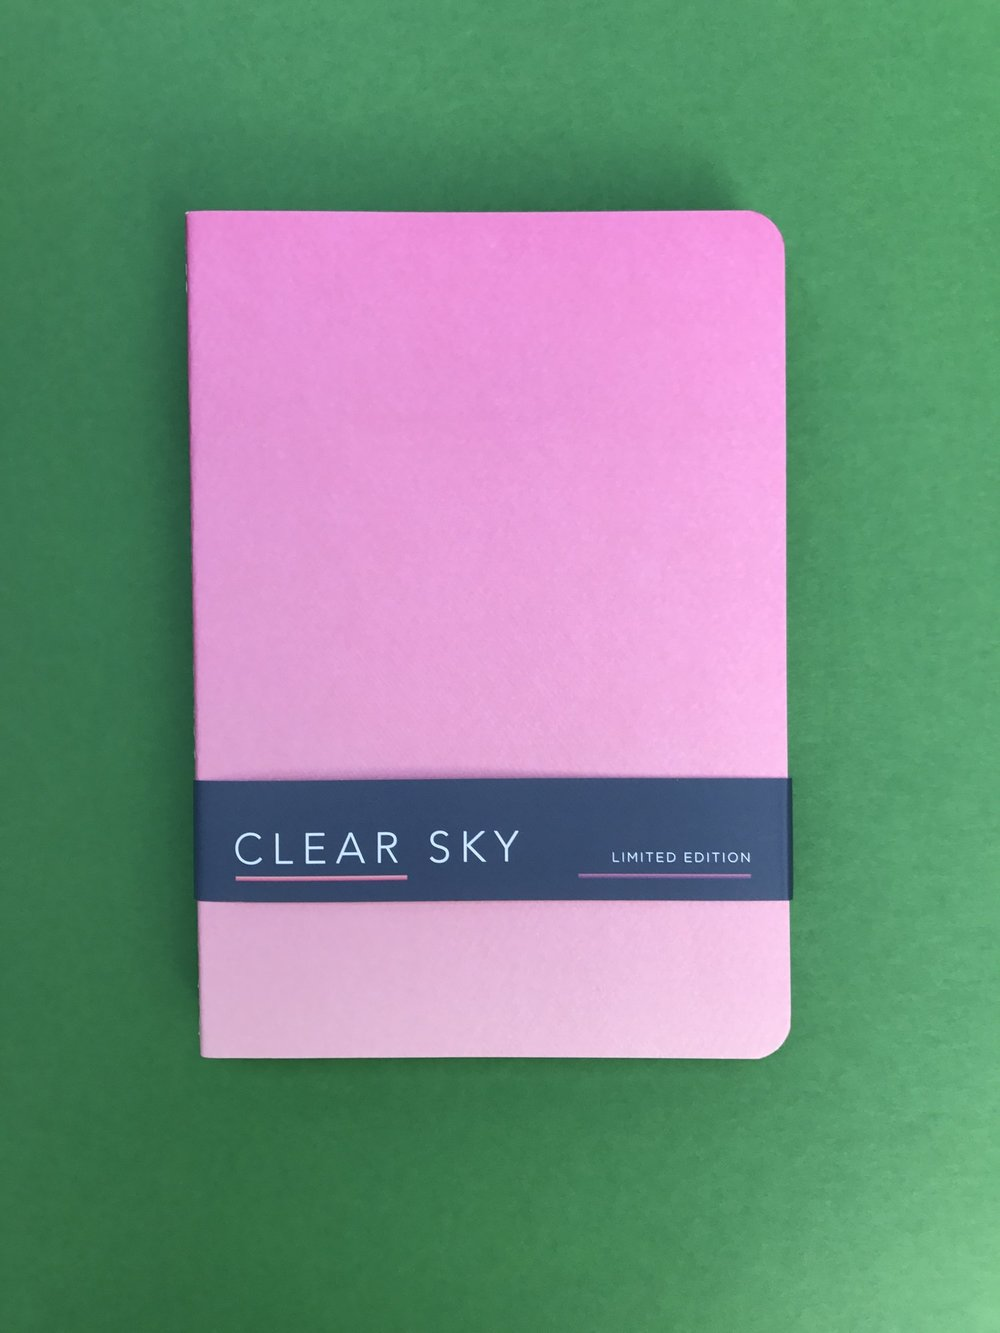 baron-fig-vanguard-clear-sky-notebooks.jpg